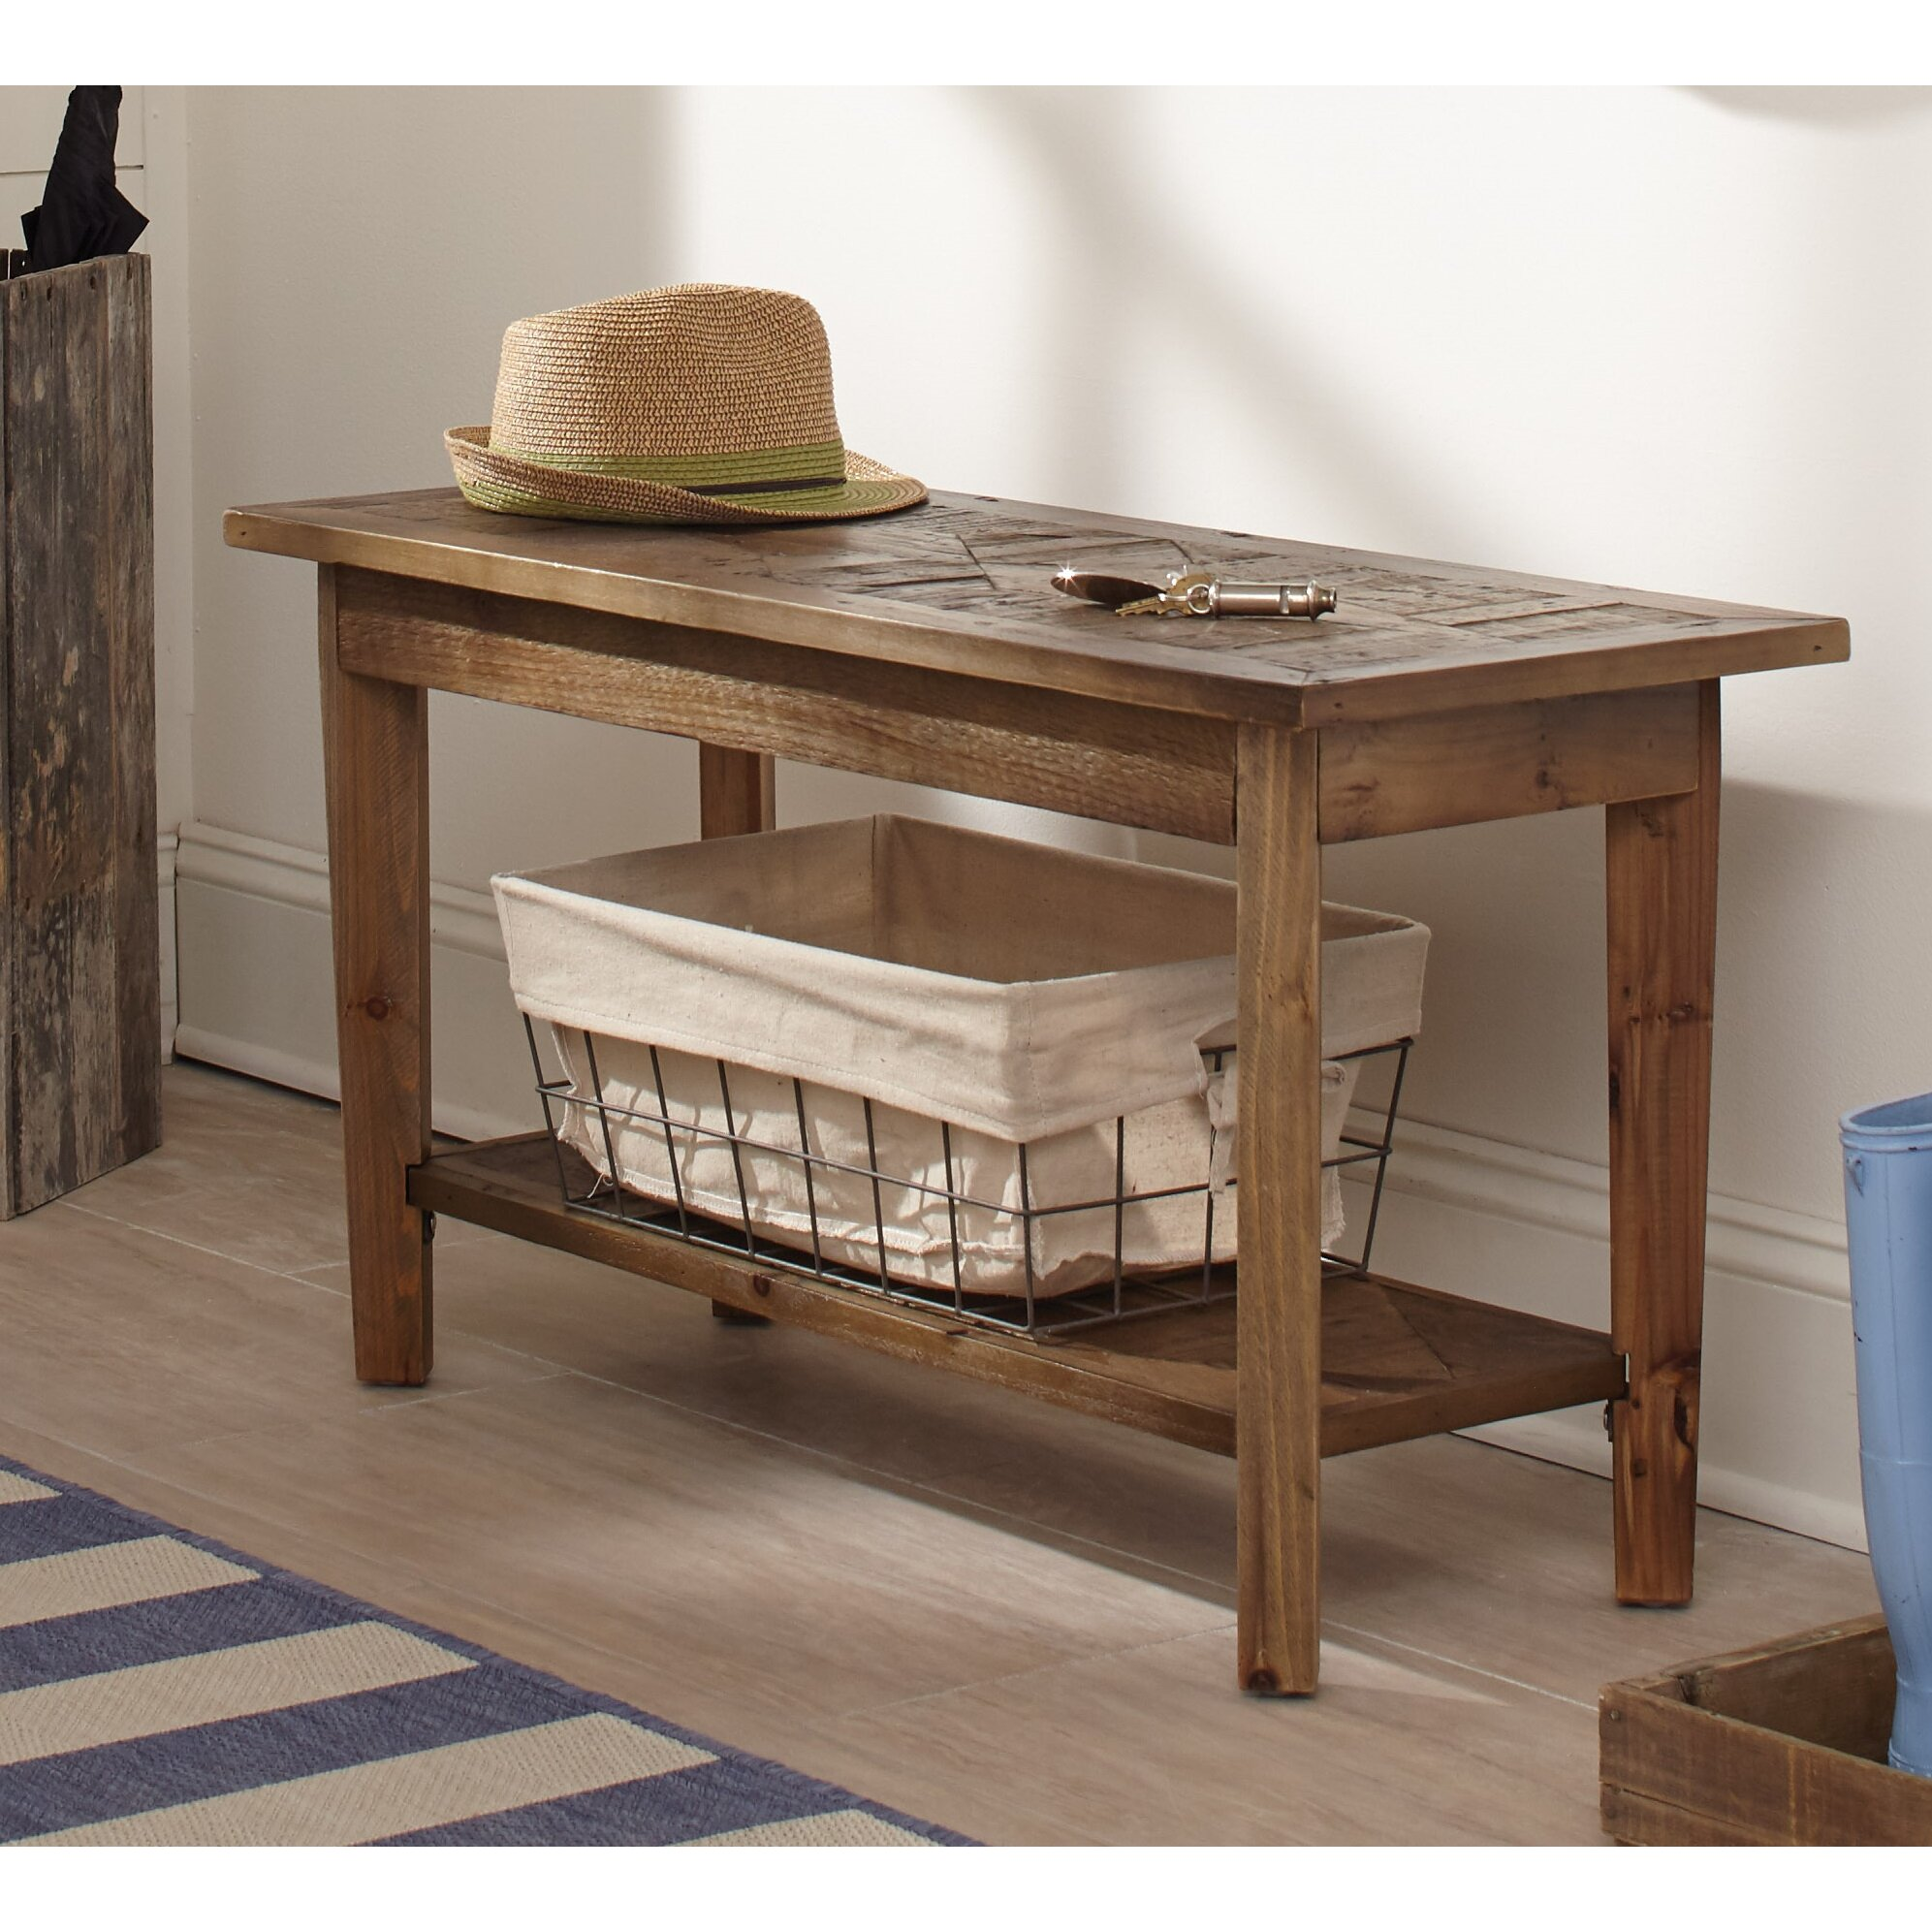 Foyer Seating Year : Alaterre renewal reclaimed wood entryway bench reviews